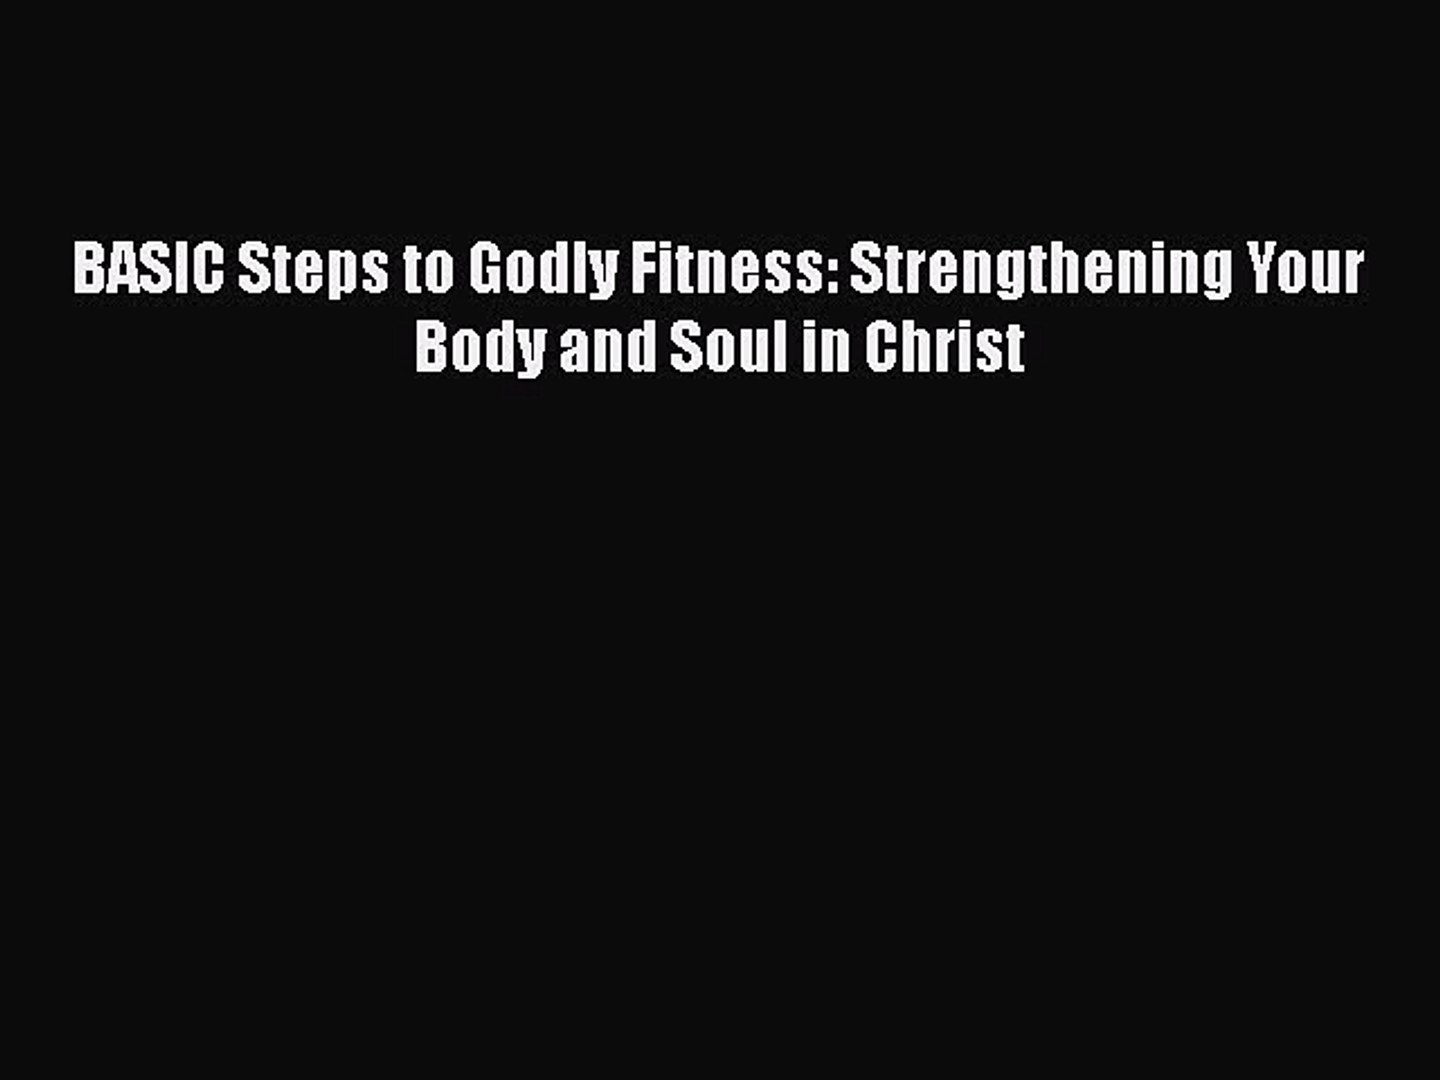 9e75383ddf READ book BASIC Steps to Godly Fitness: Strengthening Your Body and Soul in  Christ Full